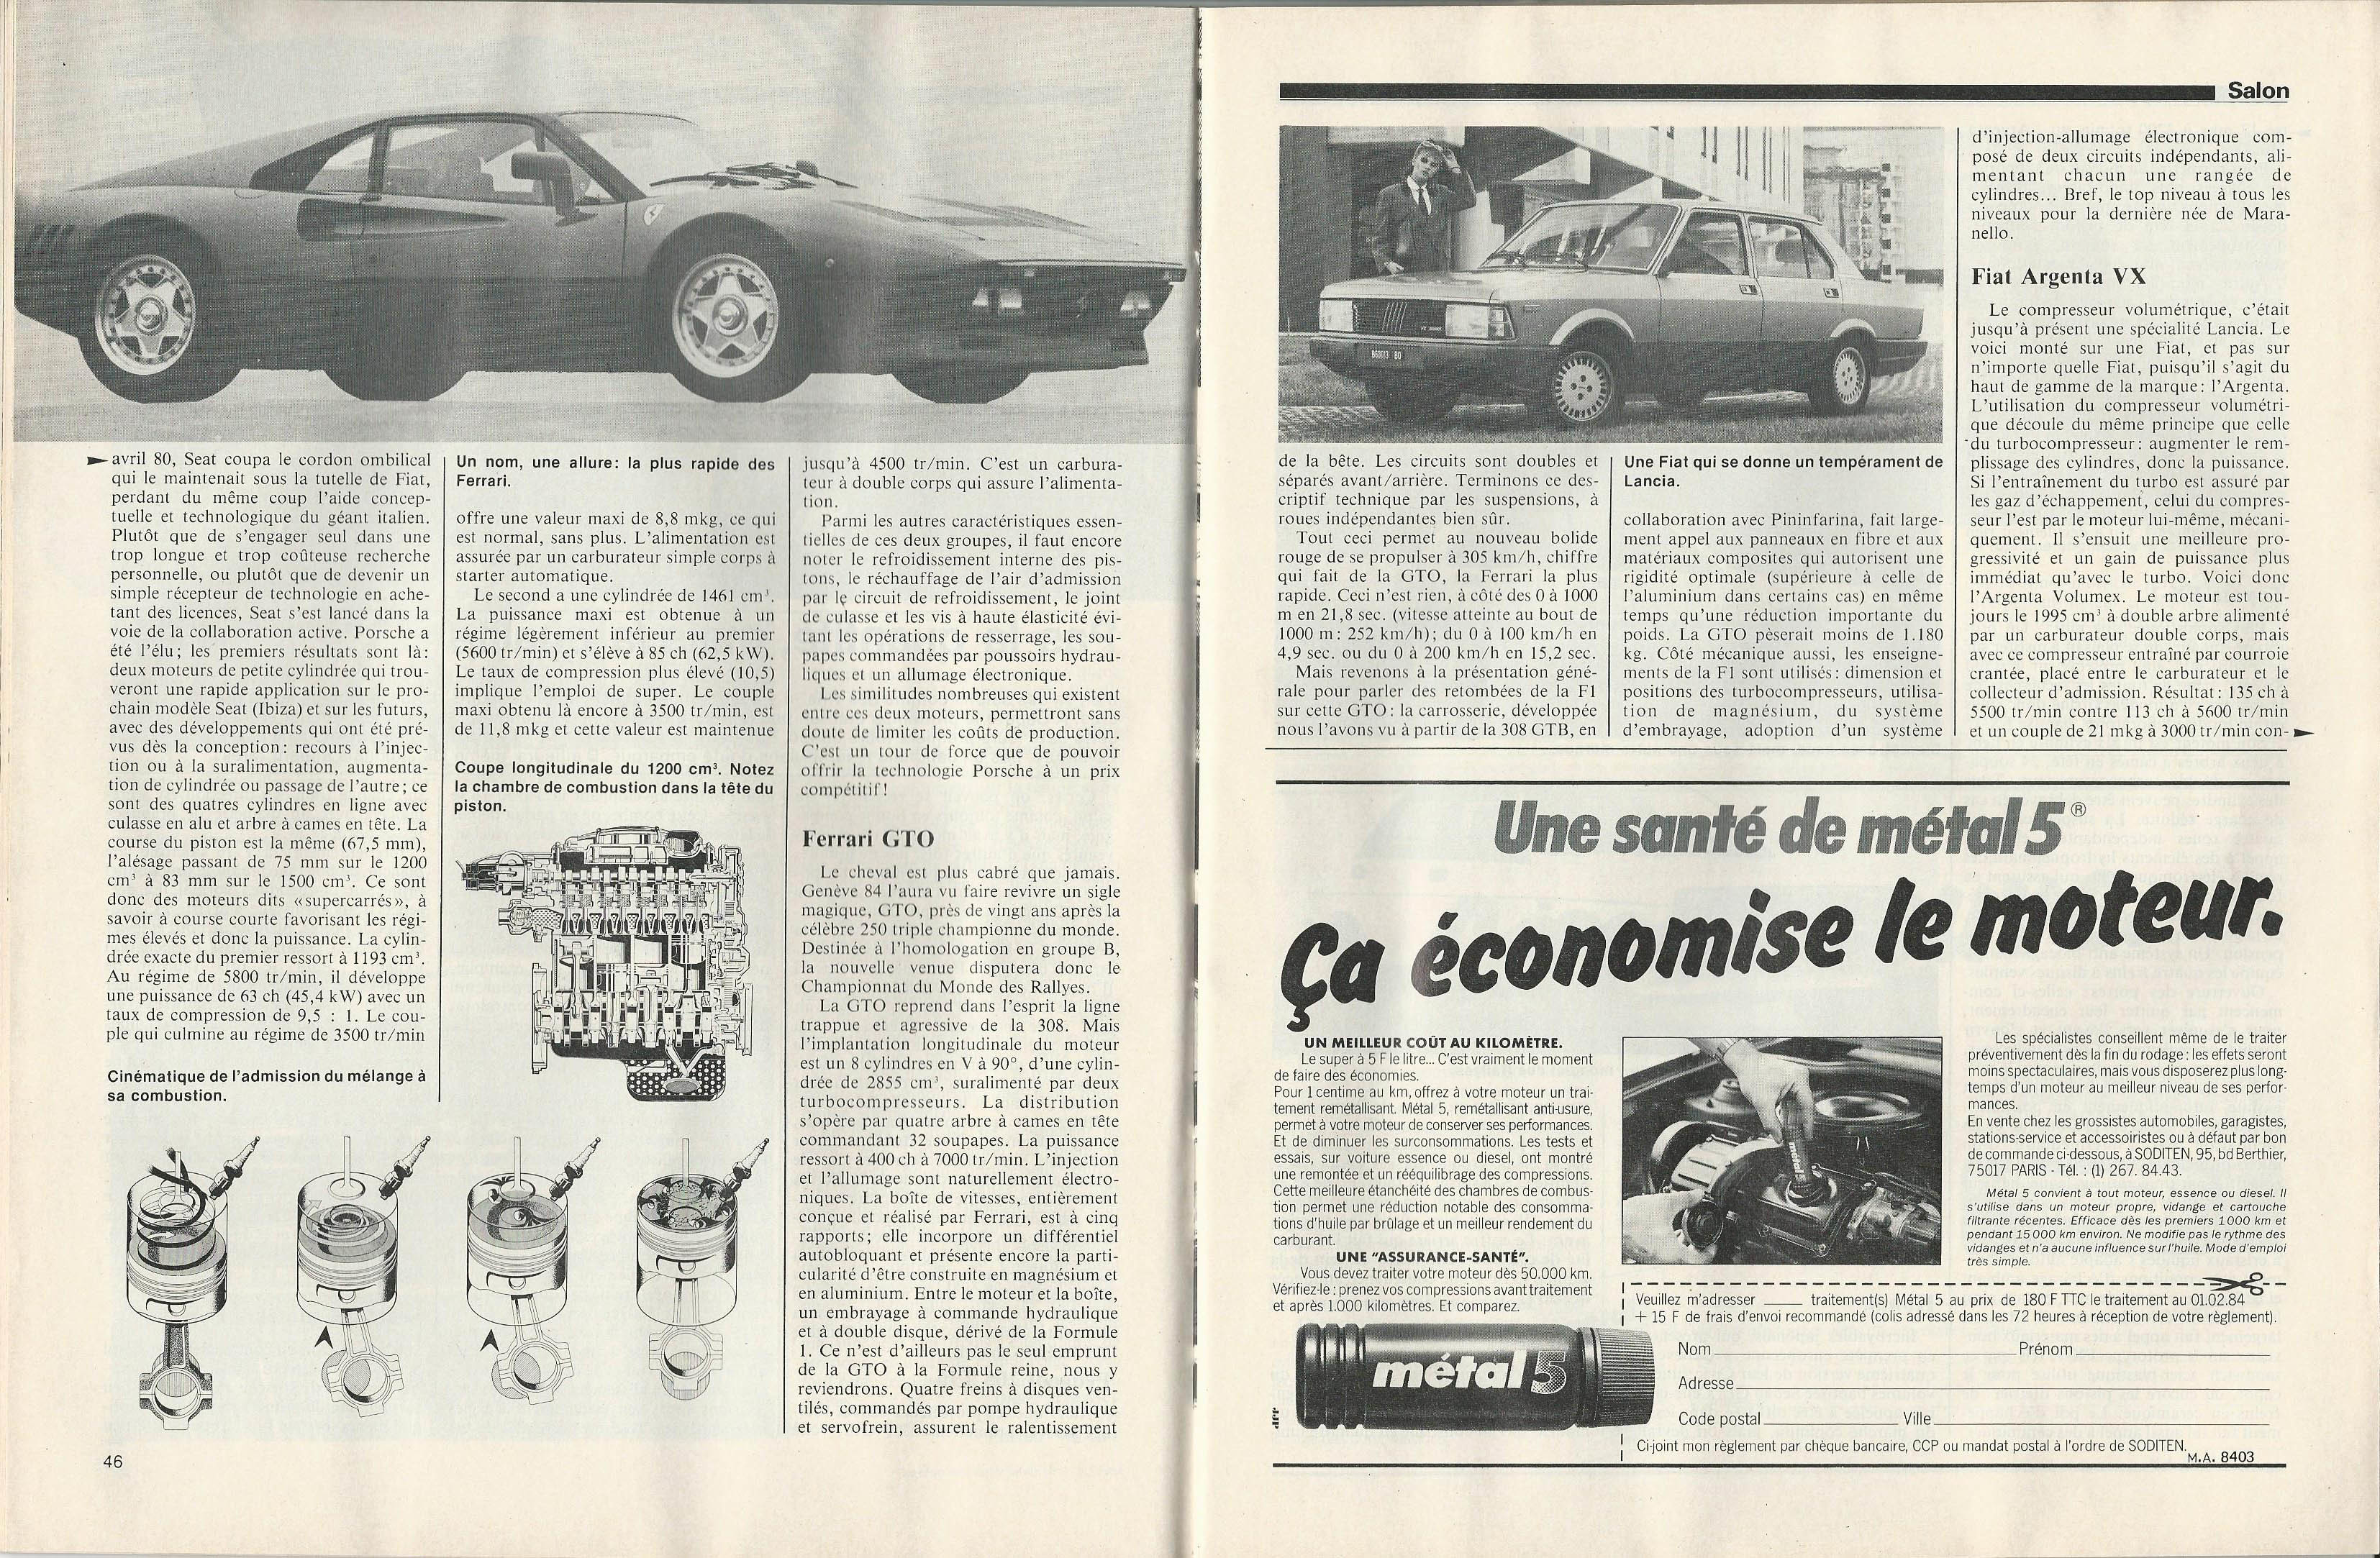 Moniteur Automobile 01 - 08 Mars 1984 (24)